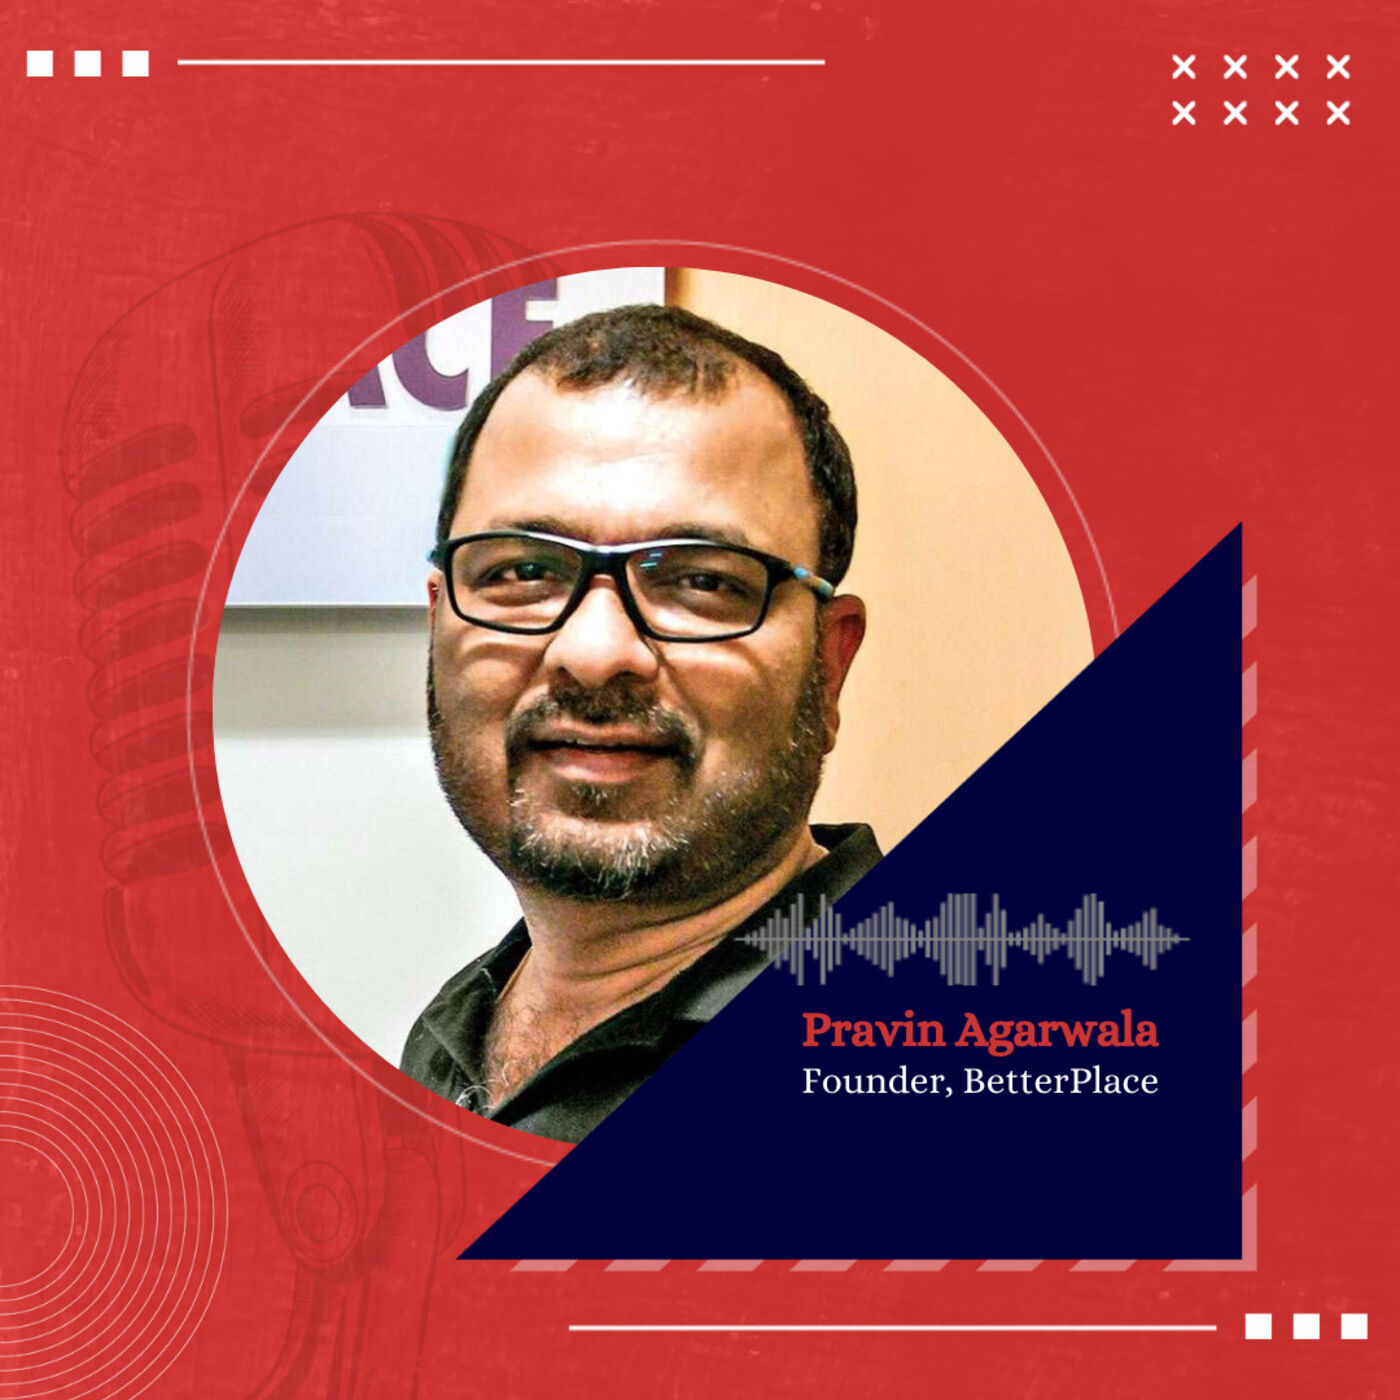 Inside the mind of Pravin Agarwala, building BetterPlace, the operating system for blue collar workforce management